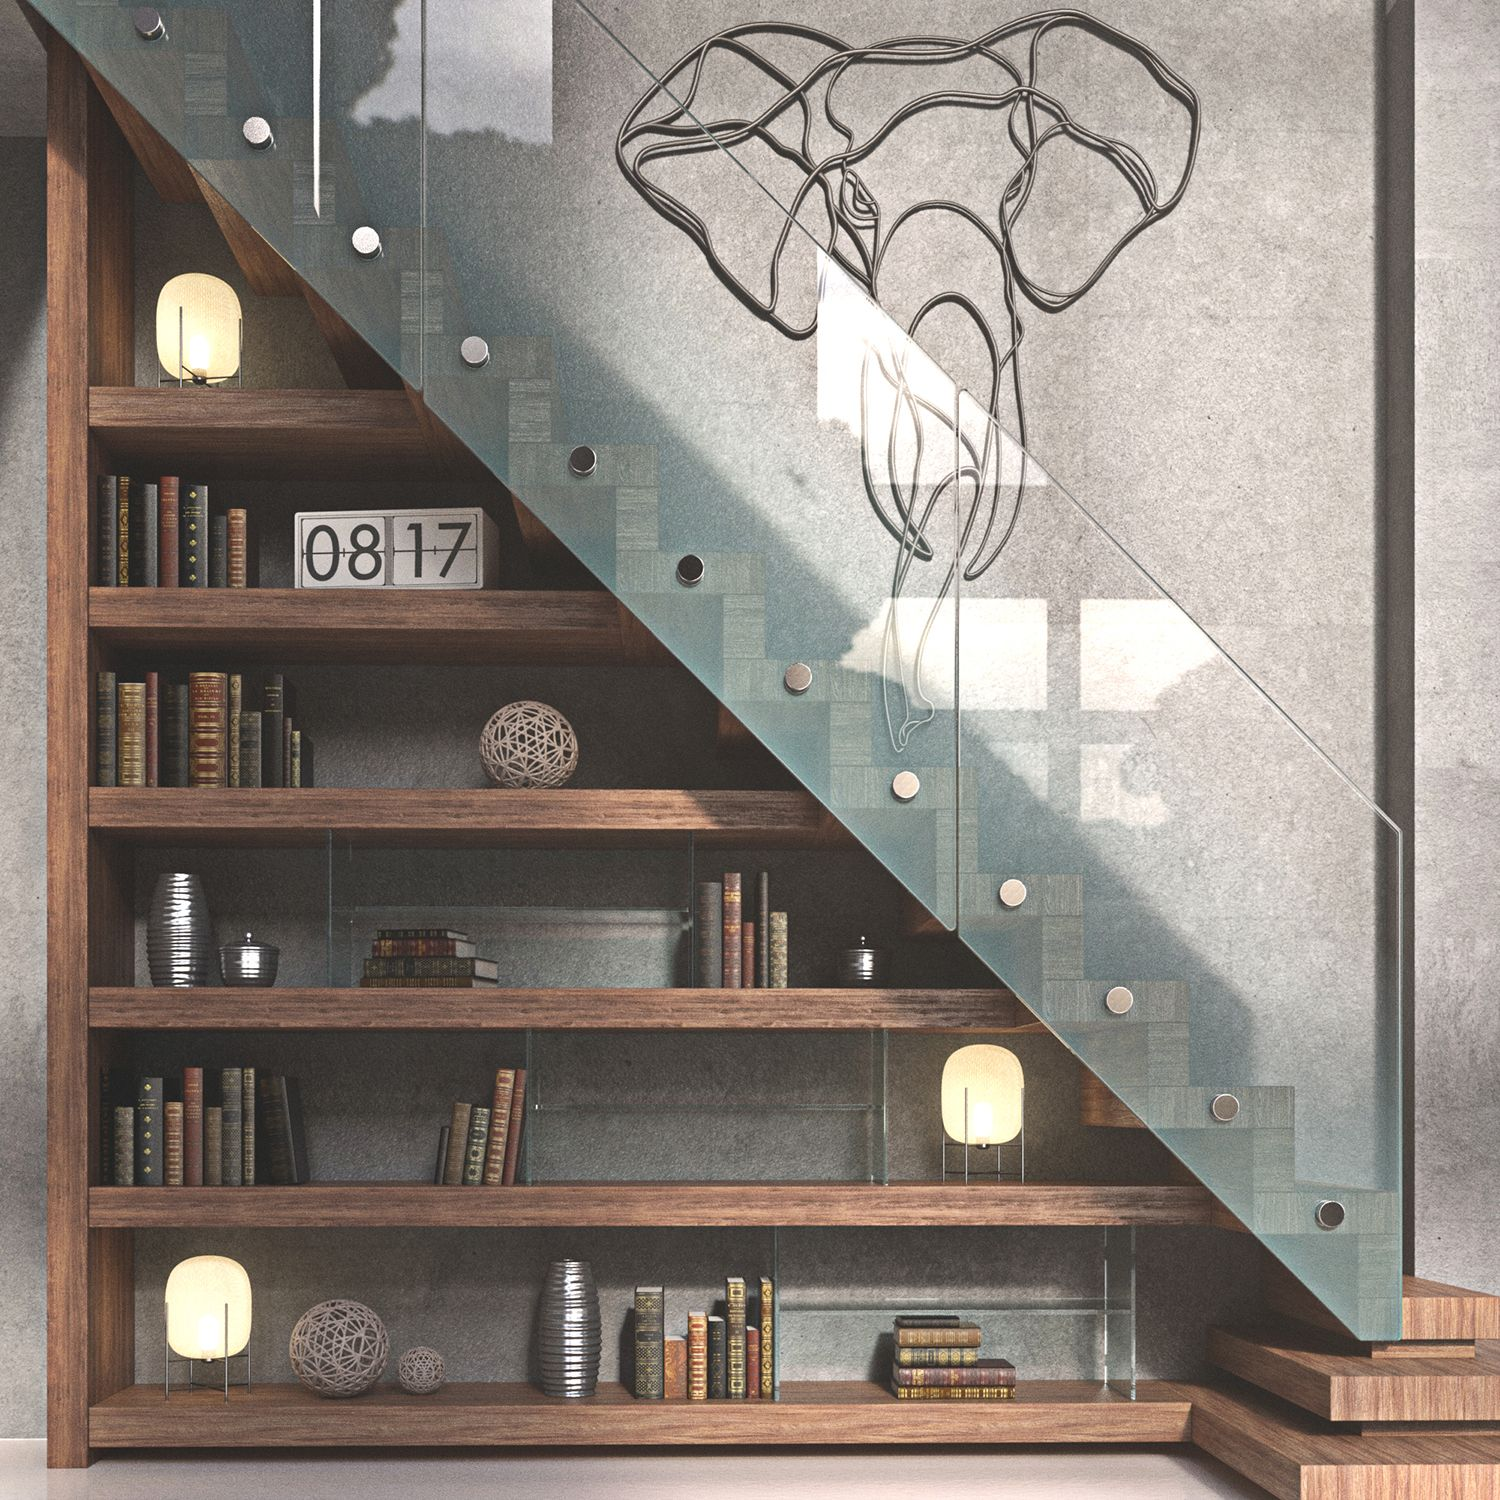 33 Staircase Designs Enriching Modern Interiors With: Luscious Interior Stairwell Rendered In KeyShot By Jon